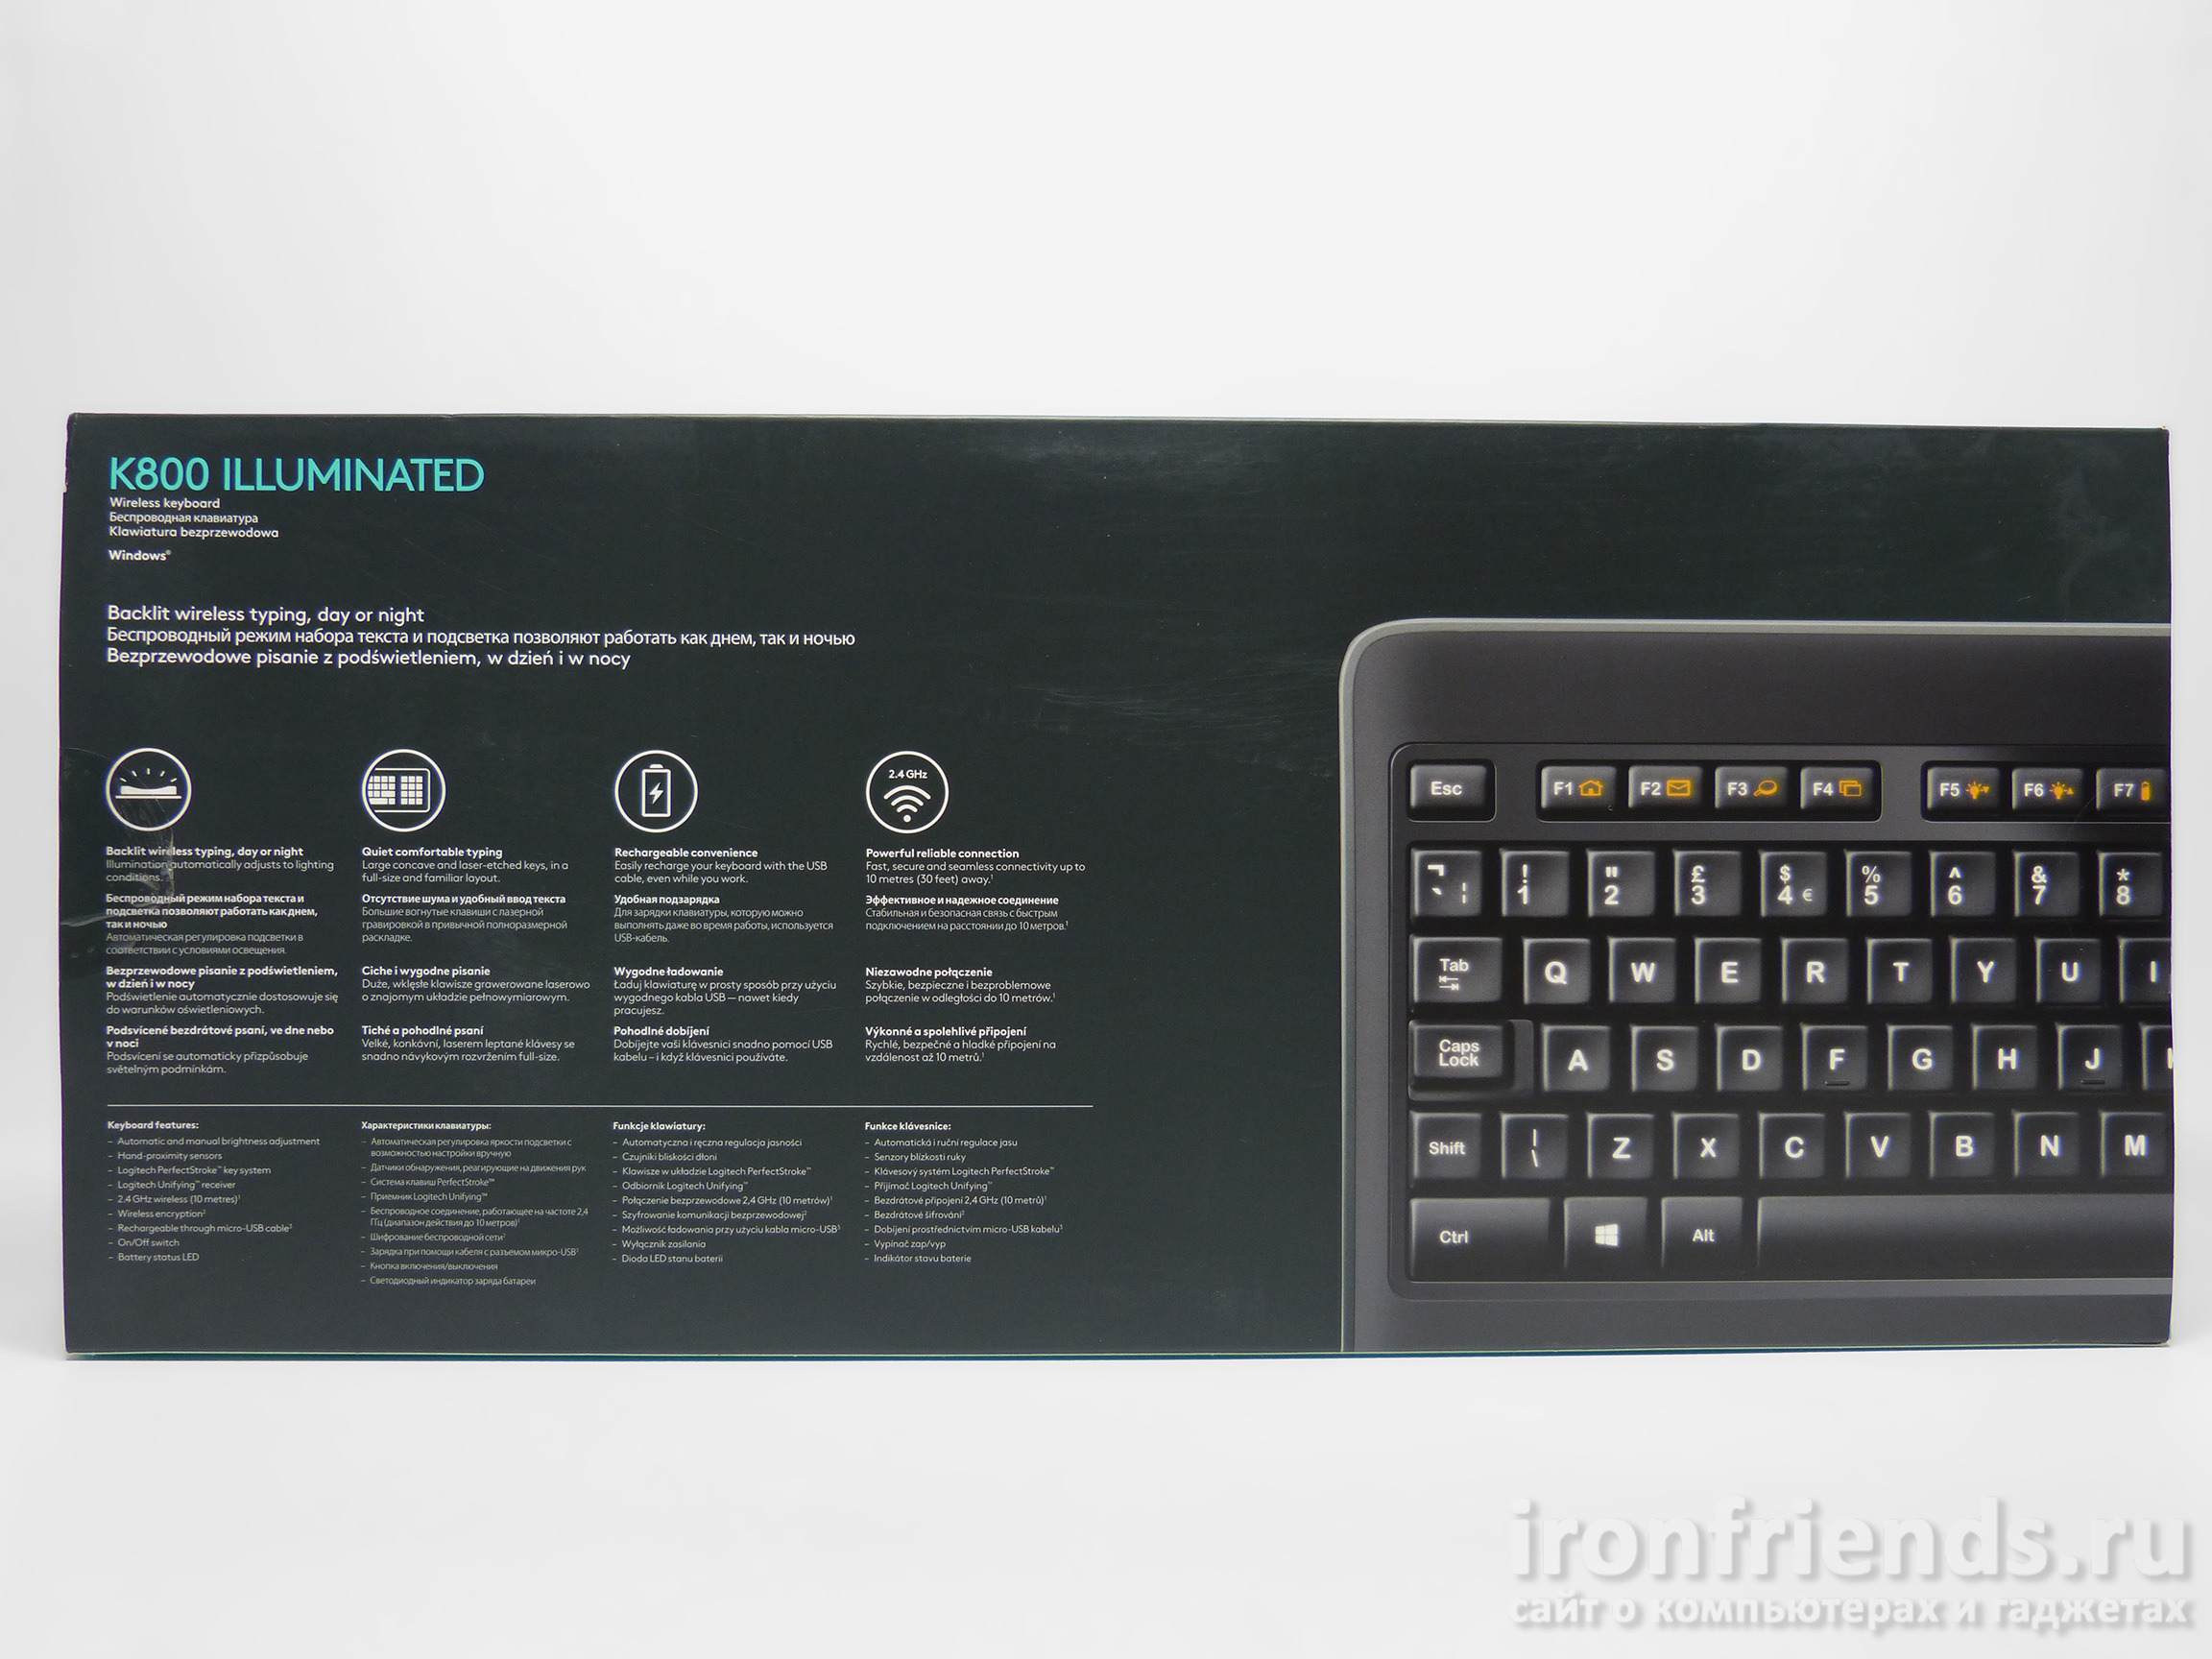 Особенности Logitech K800 illuminated